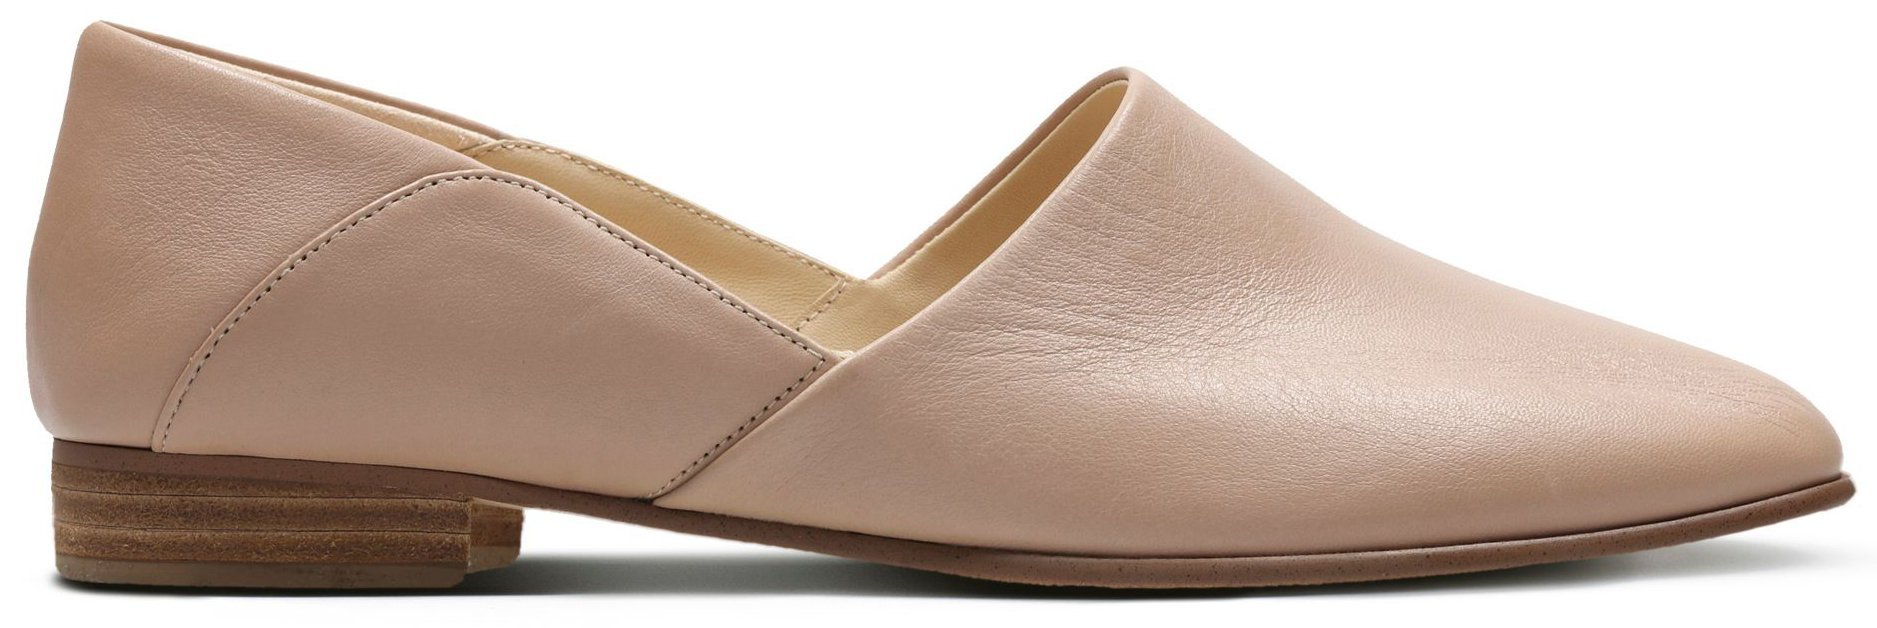 Clarks' Pure Tone features a streamlined upper and a sleek silhouette made from smooth leather